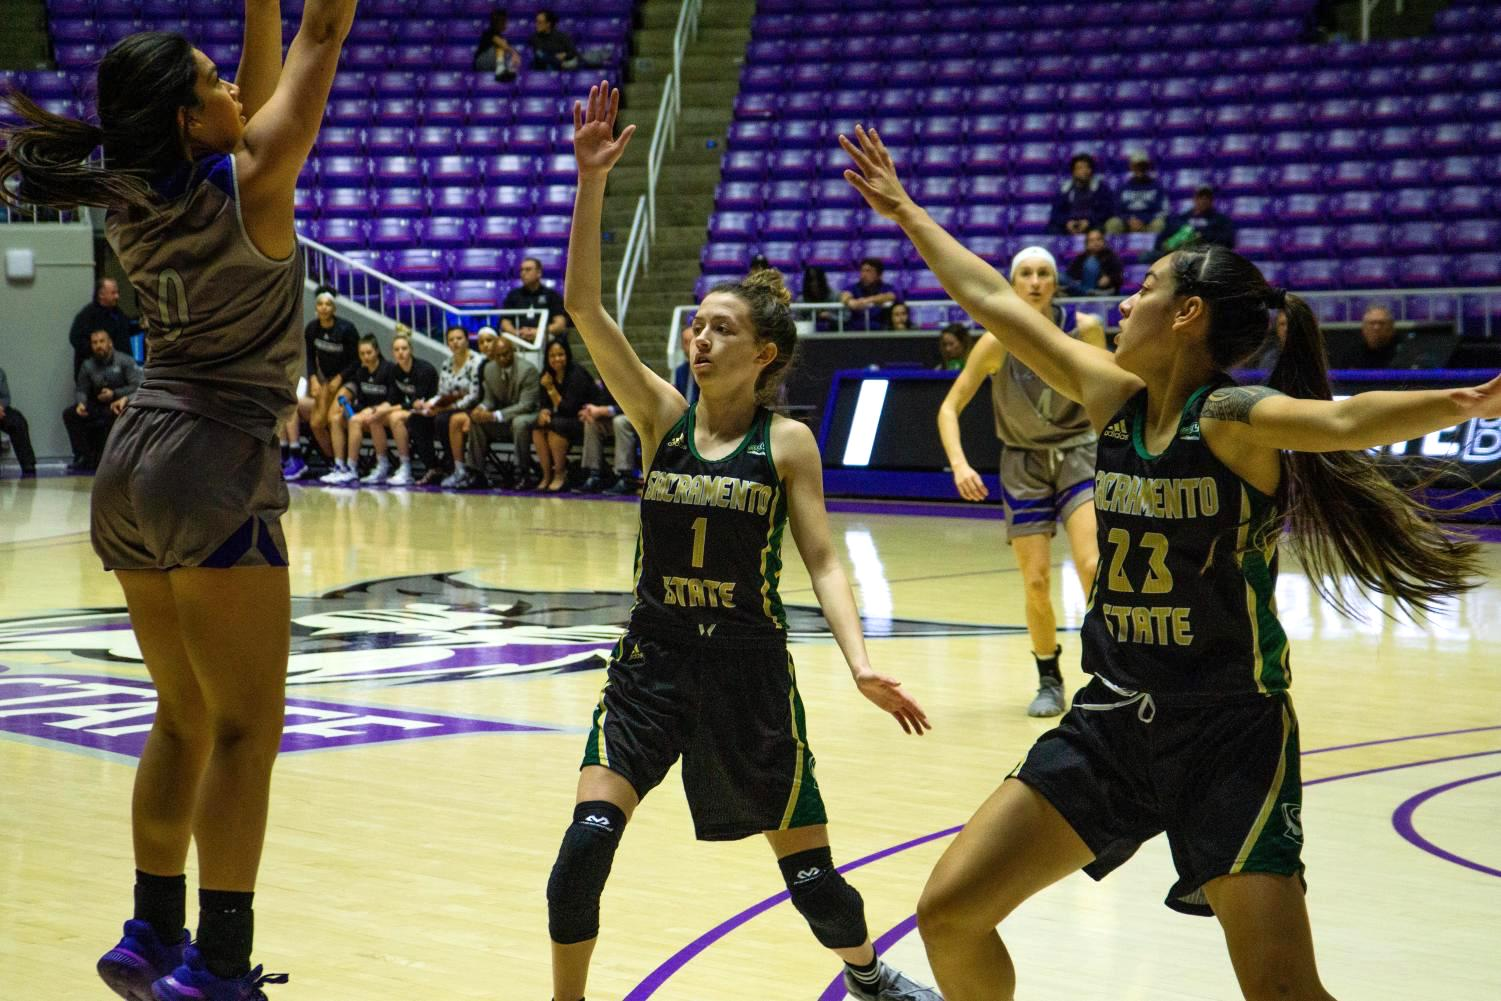 Weber State freshman guard Ula Chamberlain shoots over Sac State sophomore point guard Milee Enger (left) and freshman guard Jordan Olivares on Saturday, Jan. 11 at the Dee Events Center. The Hornets defeated the Wildcats 91-67 on the road.